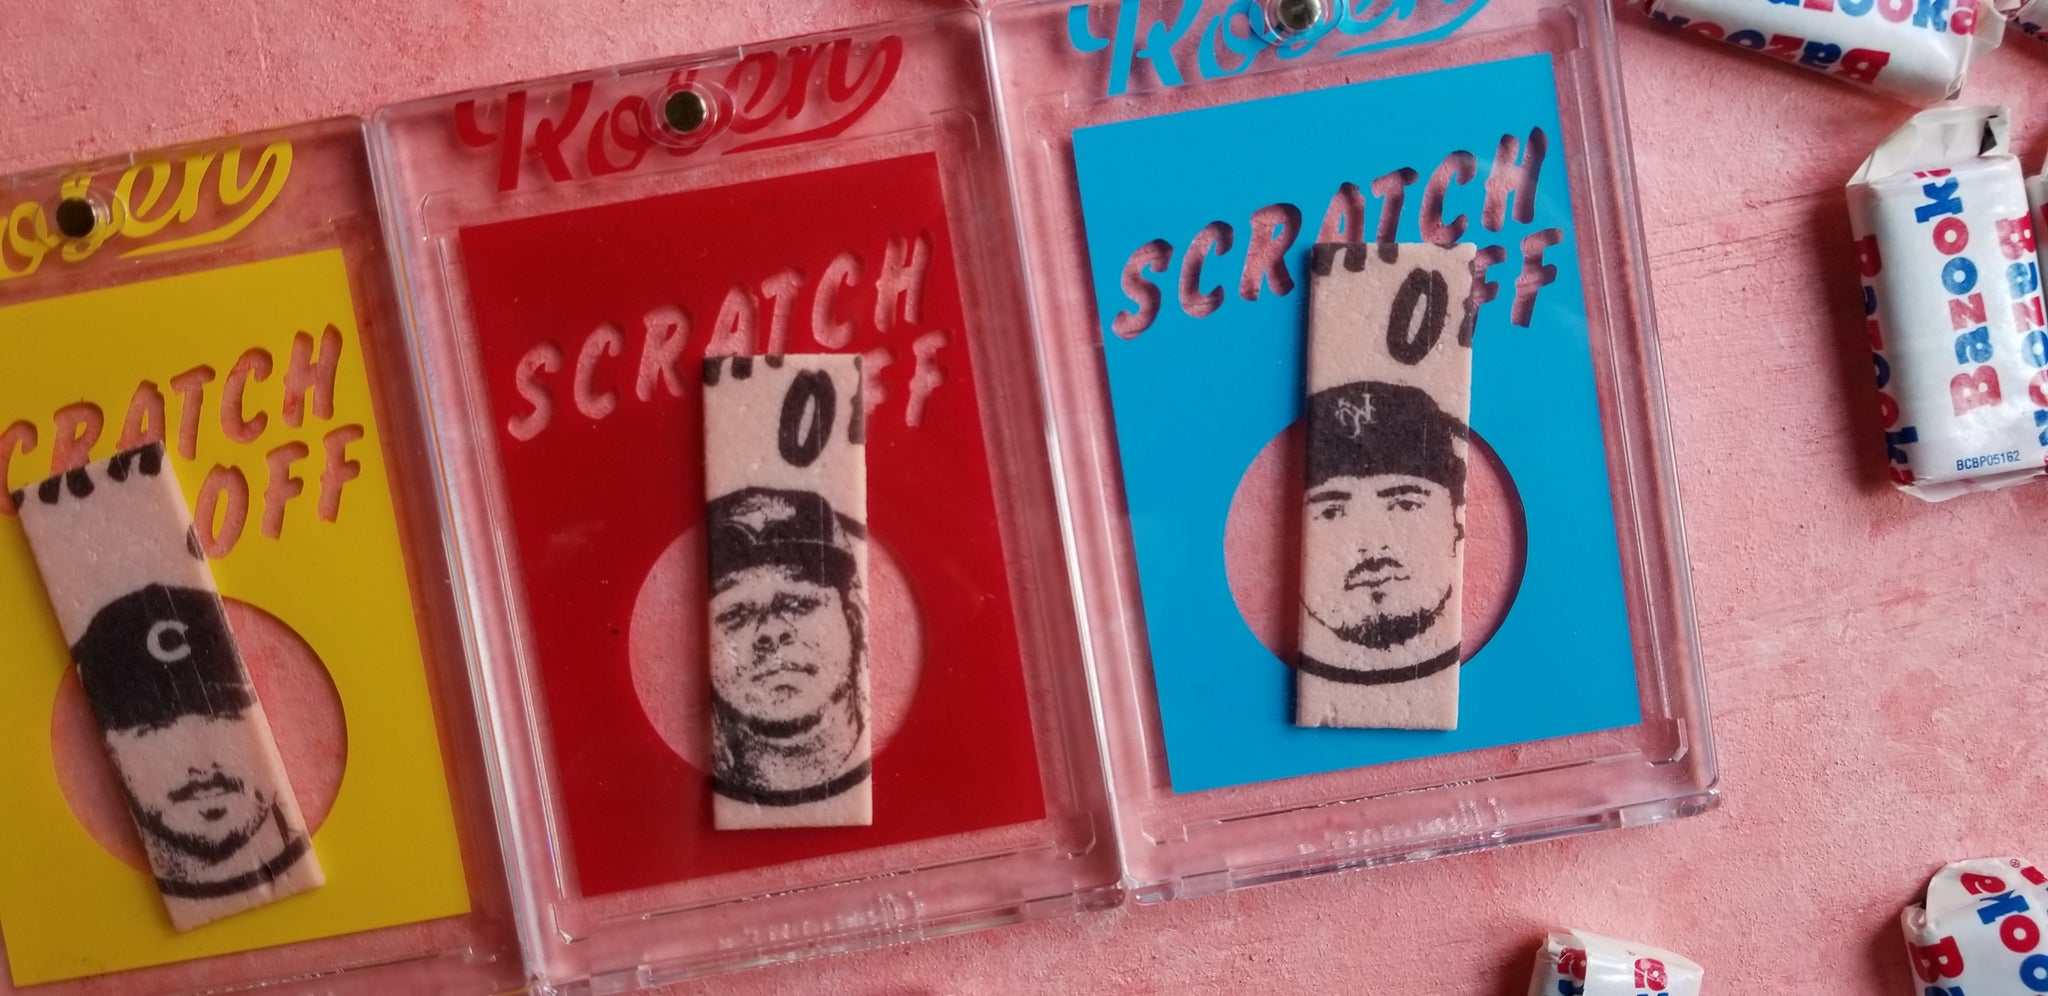 Baseball card art by Matthew Lee Rosen - Topps Scratch Offs